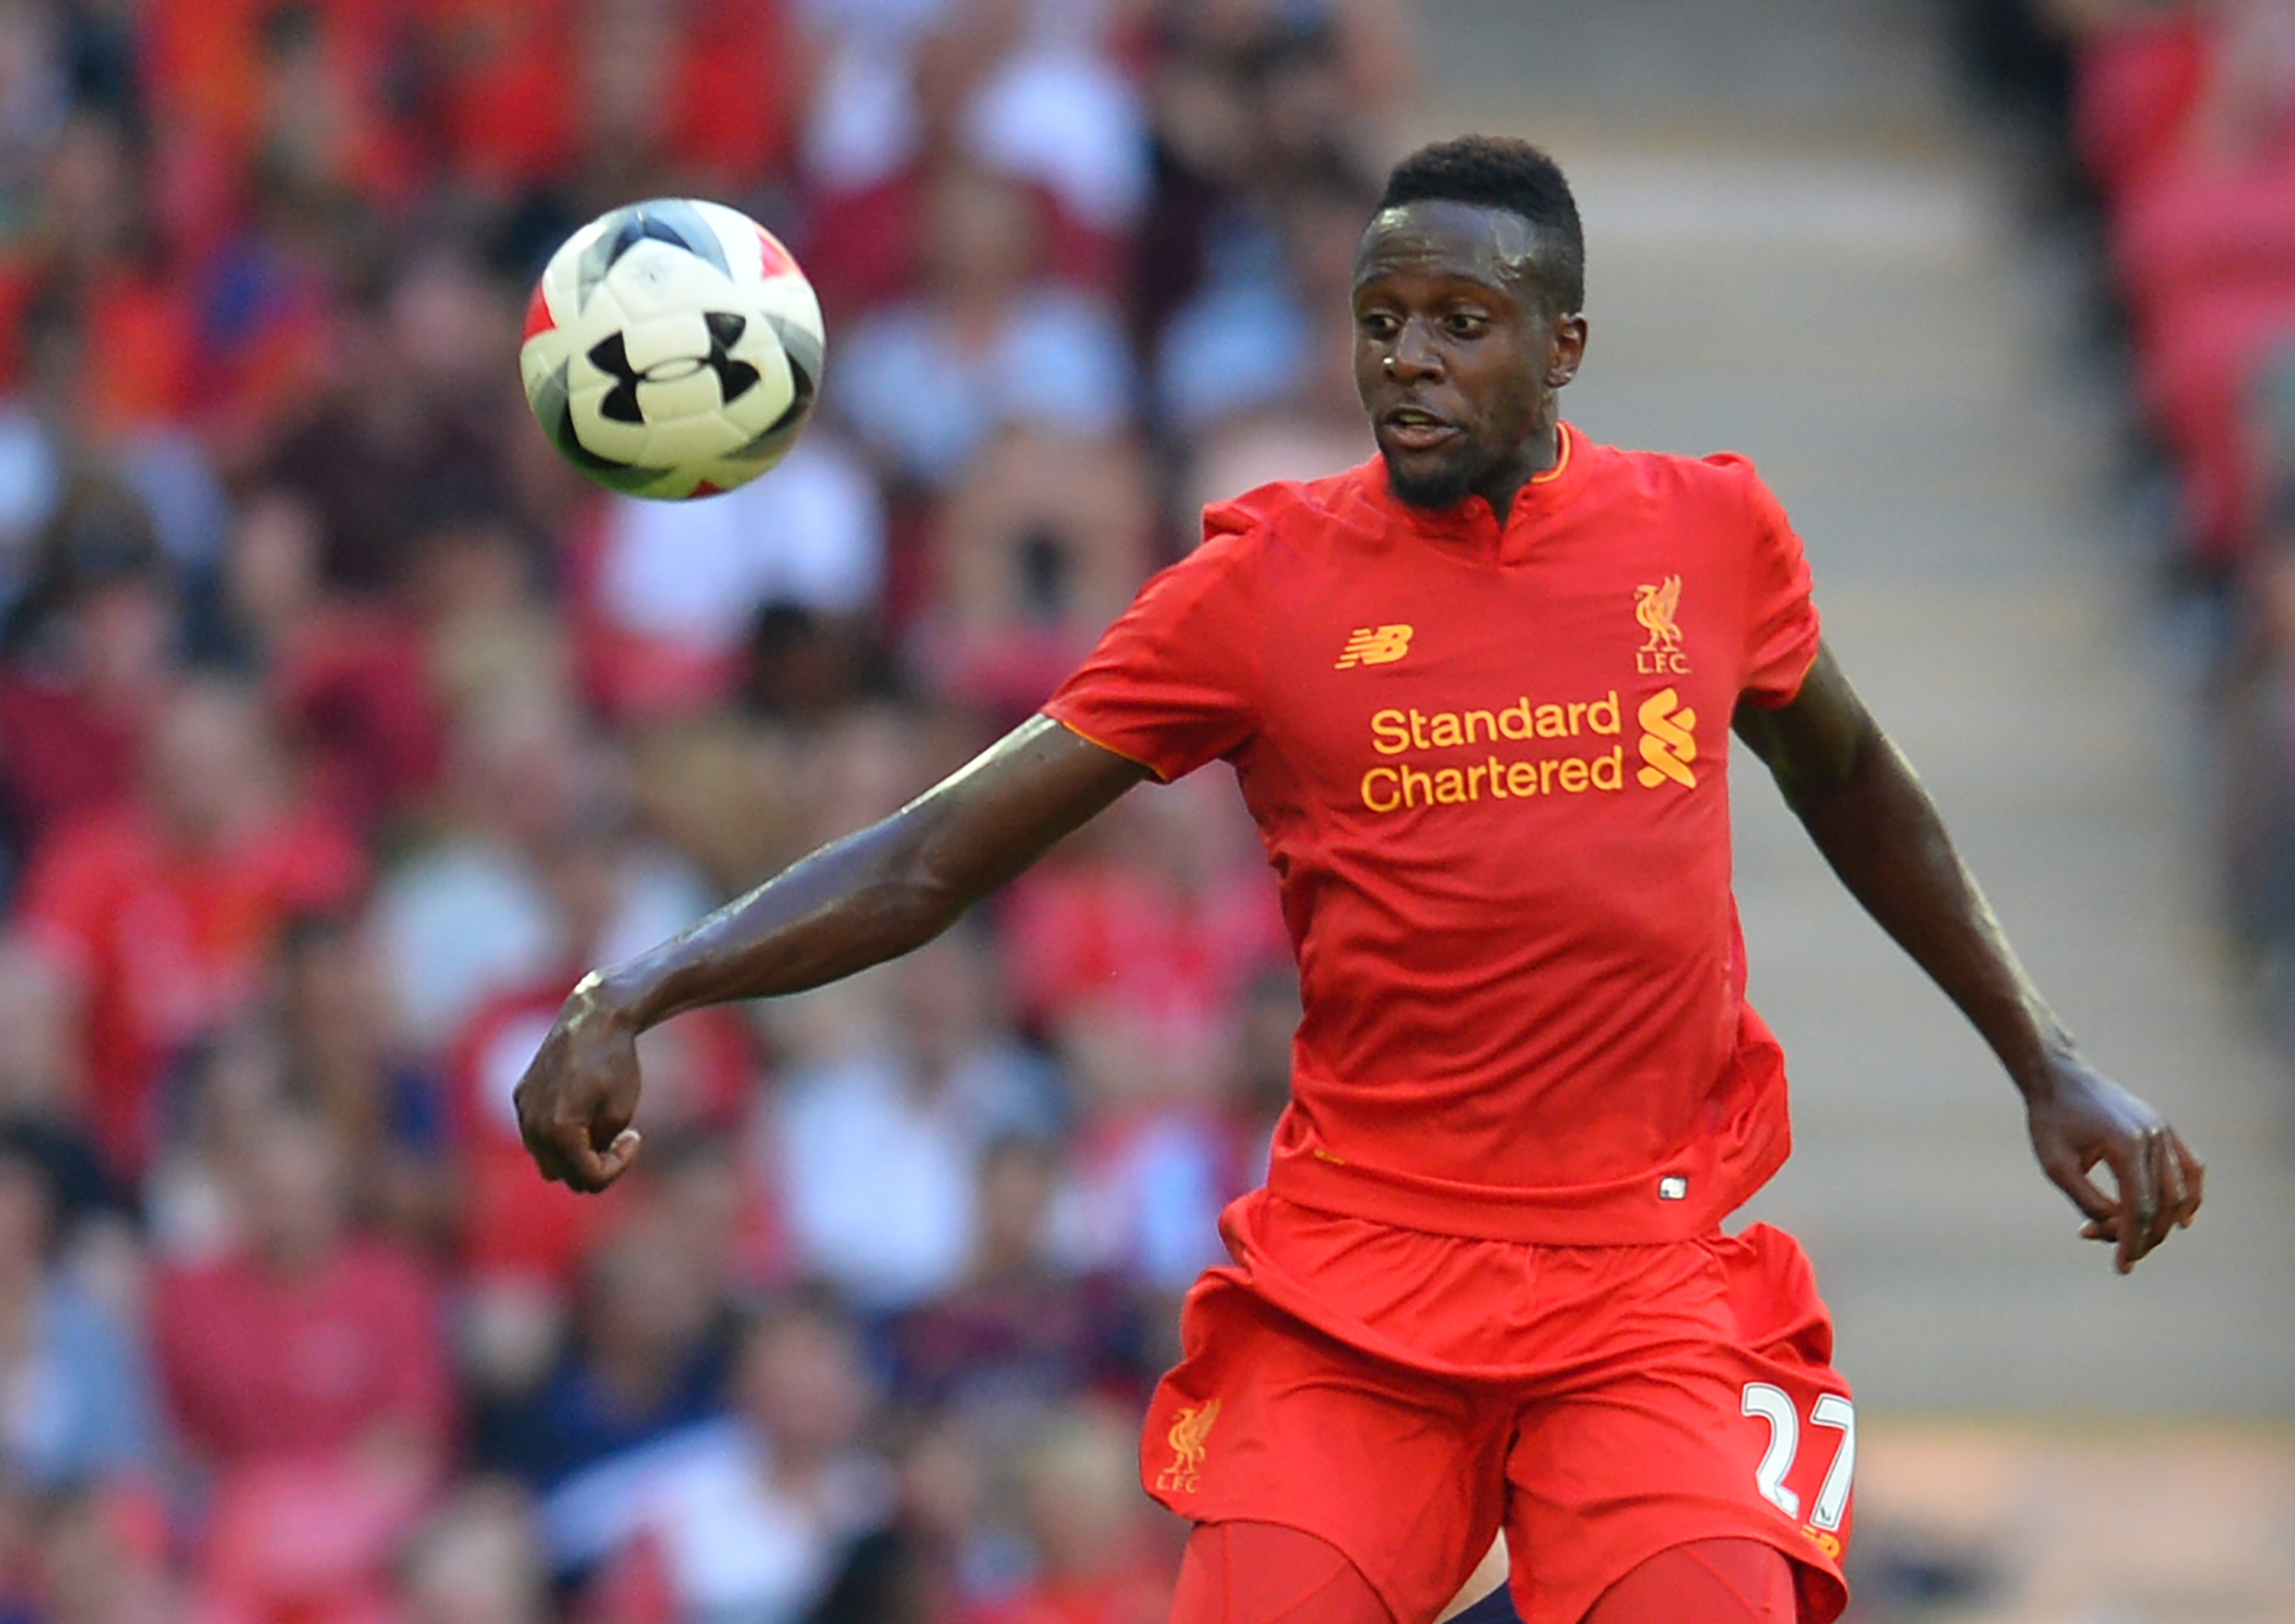 Burton v Liverpool EFL Cup: Date, kick-off time, TV channel and odds